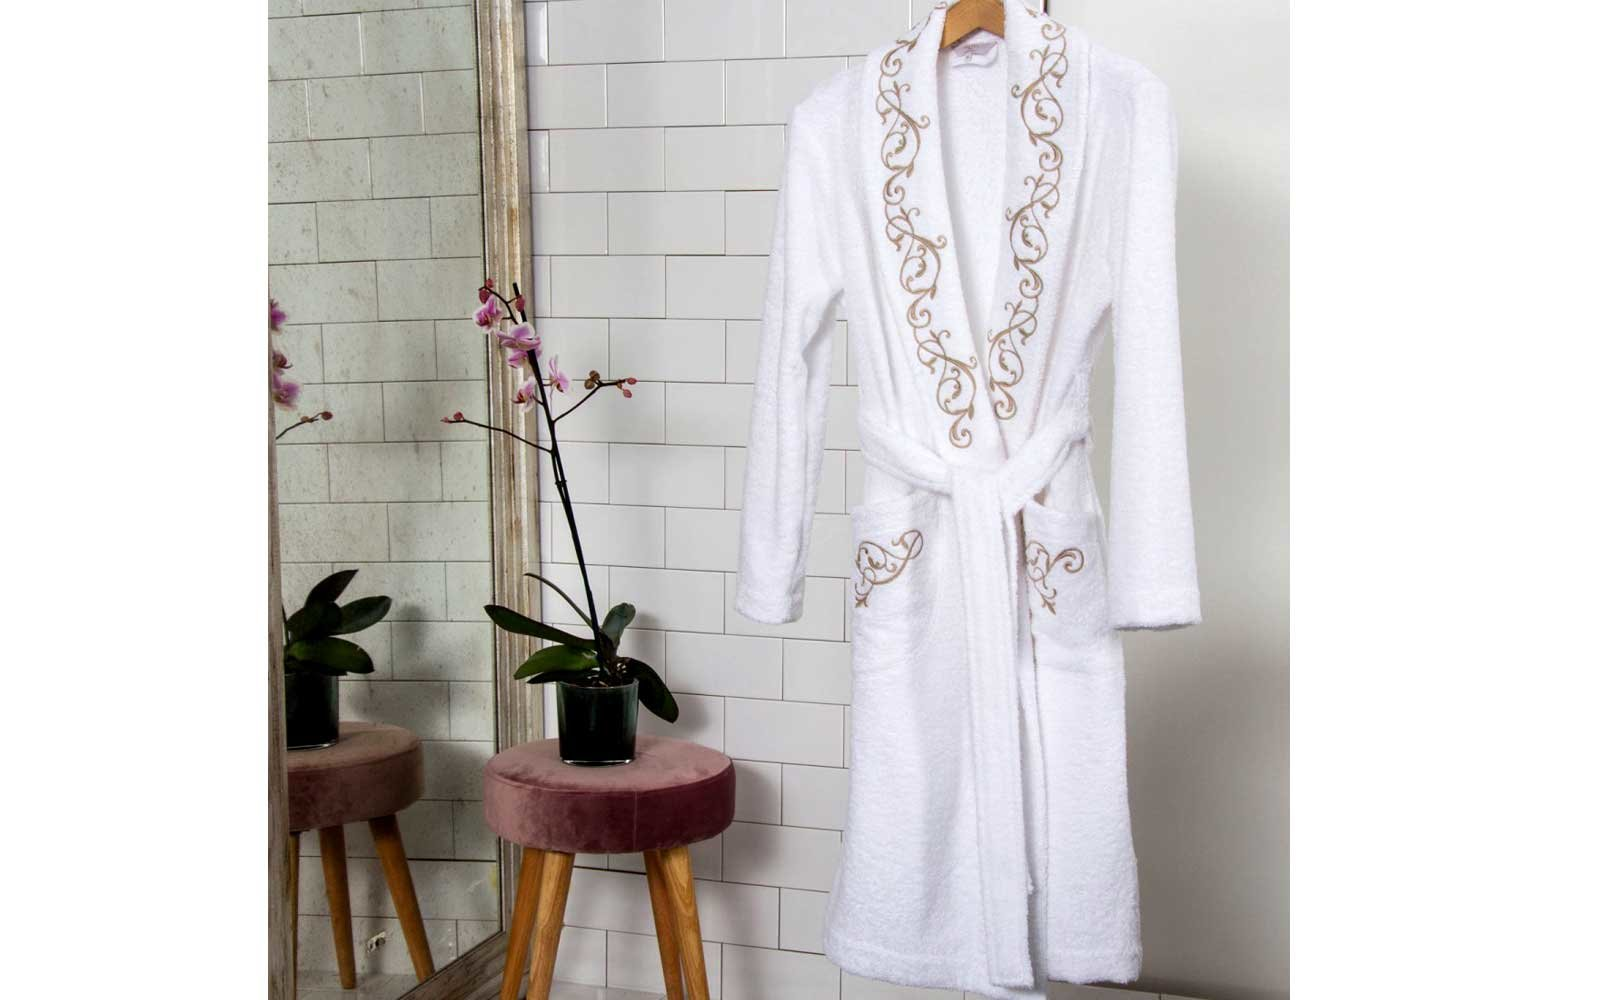 d09286e17b 14 Luxury Hotel-quality Bathrobes You Can Buy Online